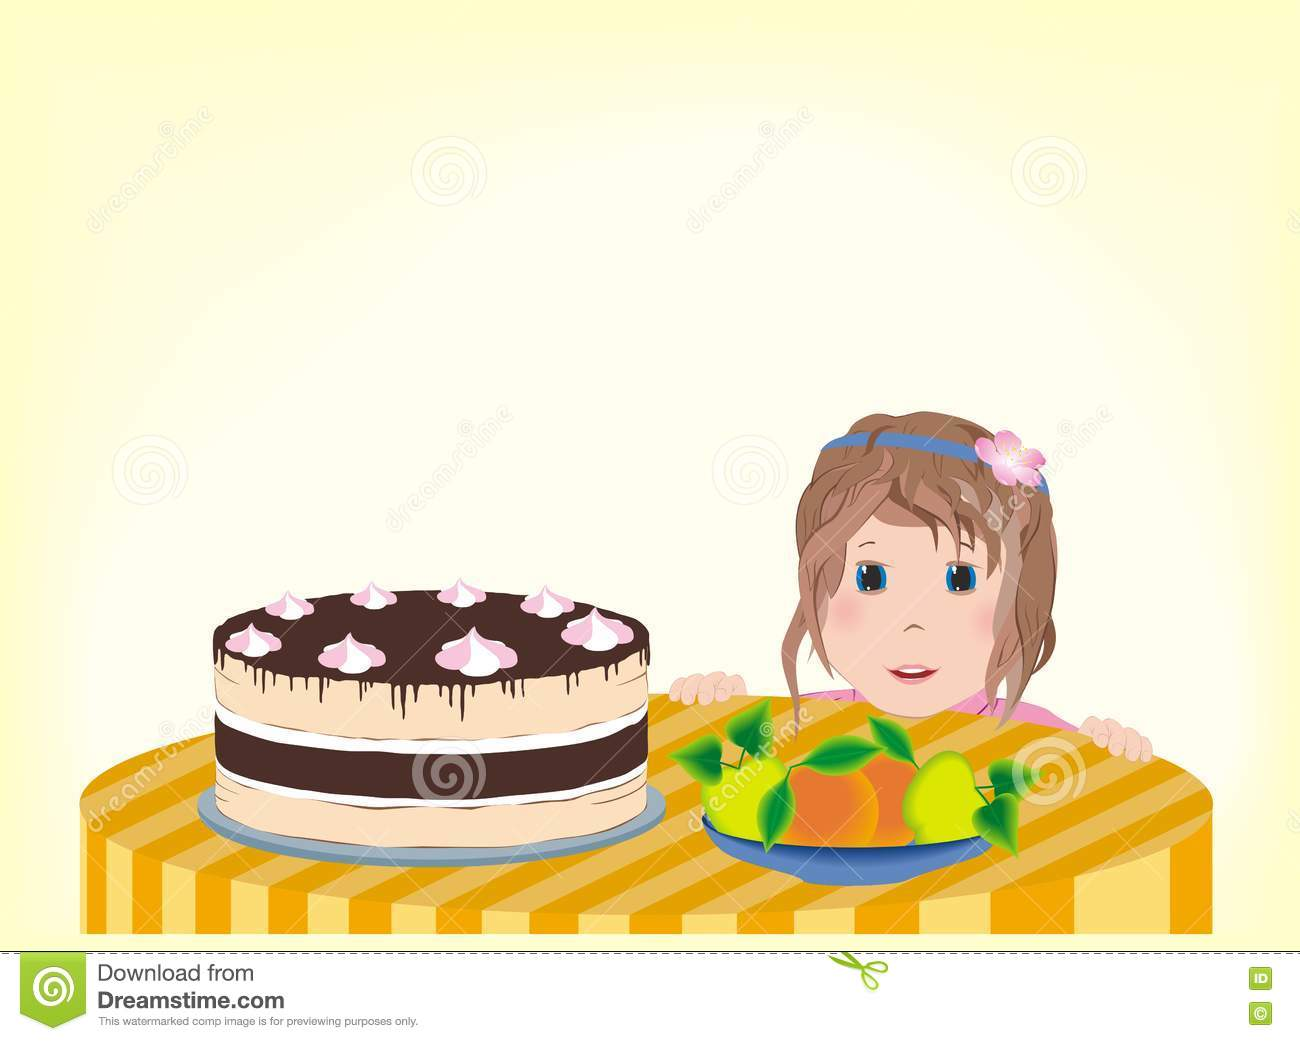 Little girl happily looks at the birthday cake on the table.